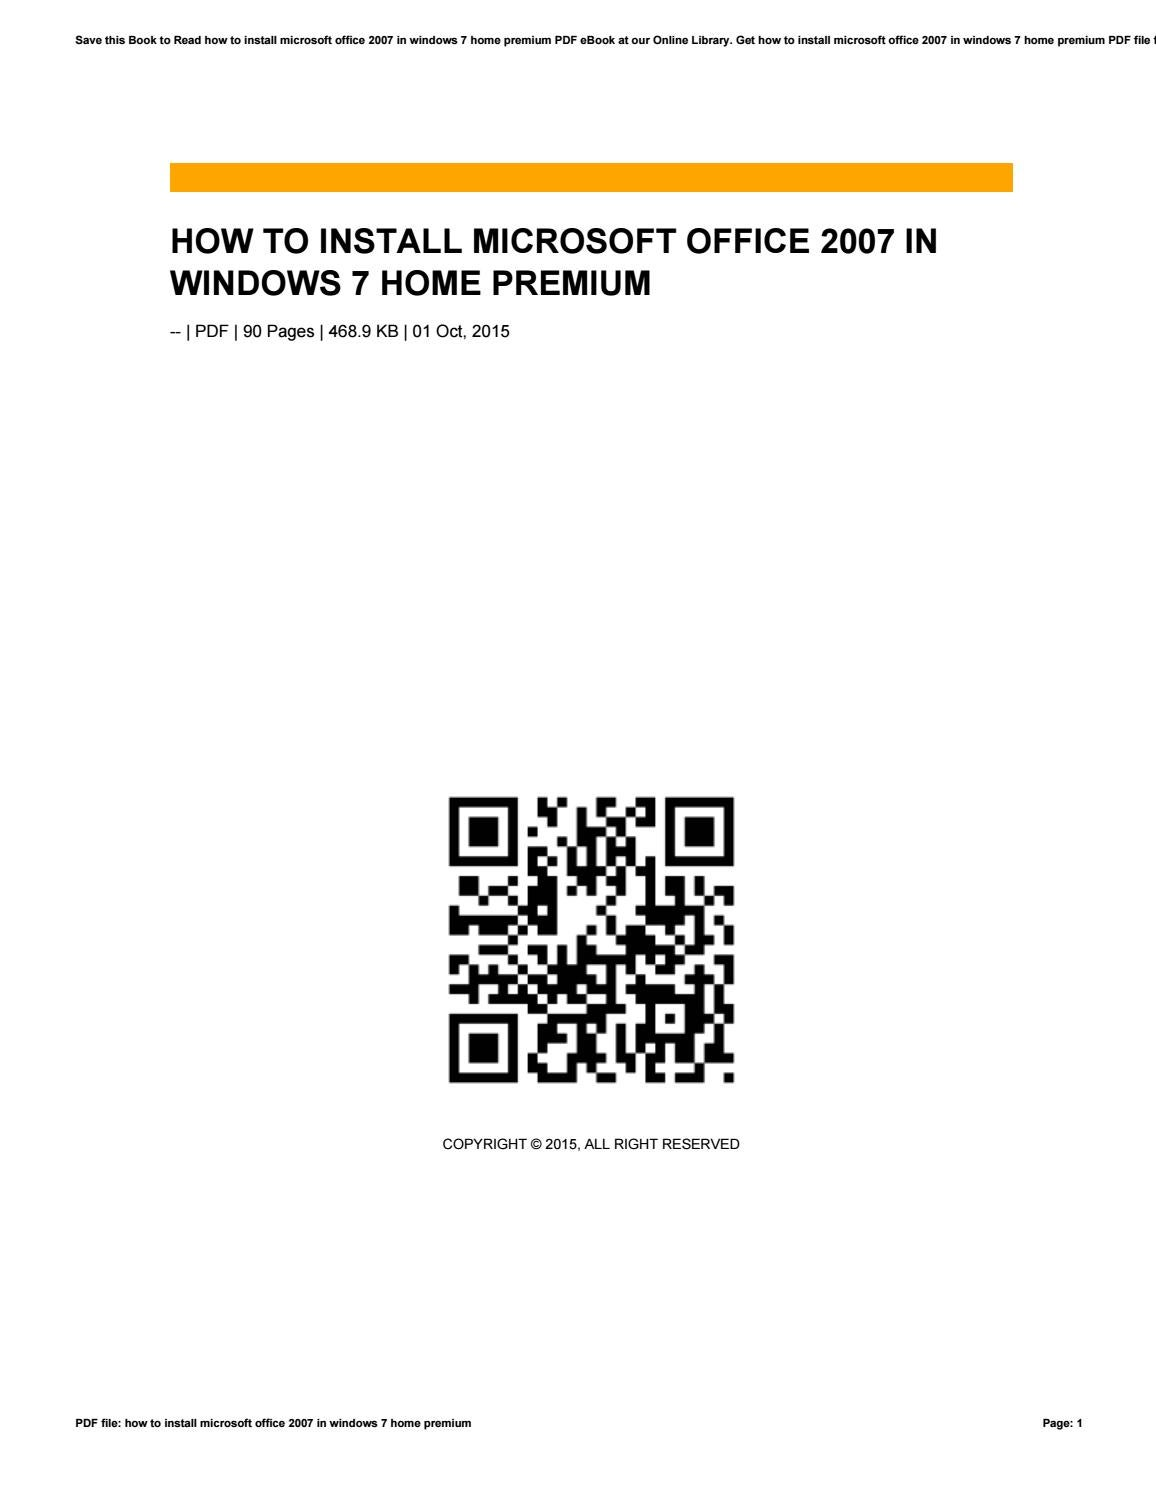 microsoft office install for windows 7